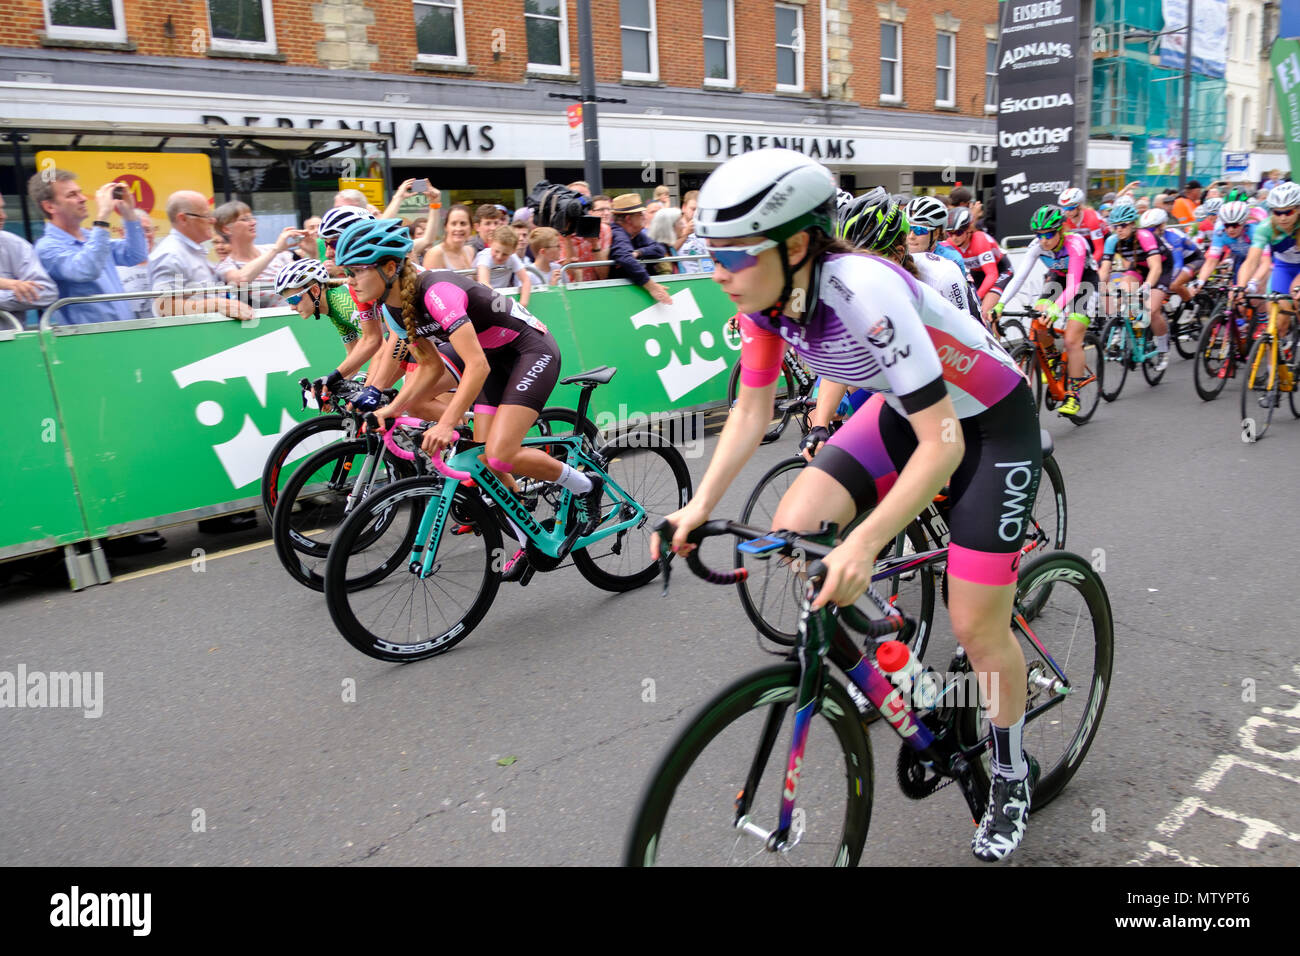 Salisbury, UK. 31st May 2018 Salisbury. Part of the recovery programme for Salisbury after recently nerve agent attack, the city hosted the finals of the elite OVO Energy Tour Series. Wiltshire Council and Salisbury City Council supported the race, which took place in Wiltshire for the first time as part of the Salisbury recovery programme. The prestigious tour reach its exciting climax, when the men's and women's teams race for victory after competing in eight previous rounds in different cities. Credit: © pcp/ Alamy Stock Photo (Default)/Alamy Live News Stock Photo